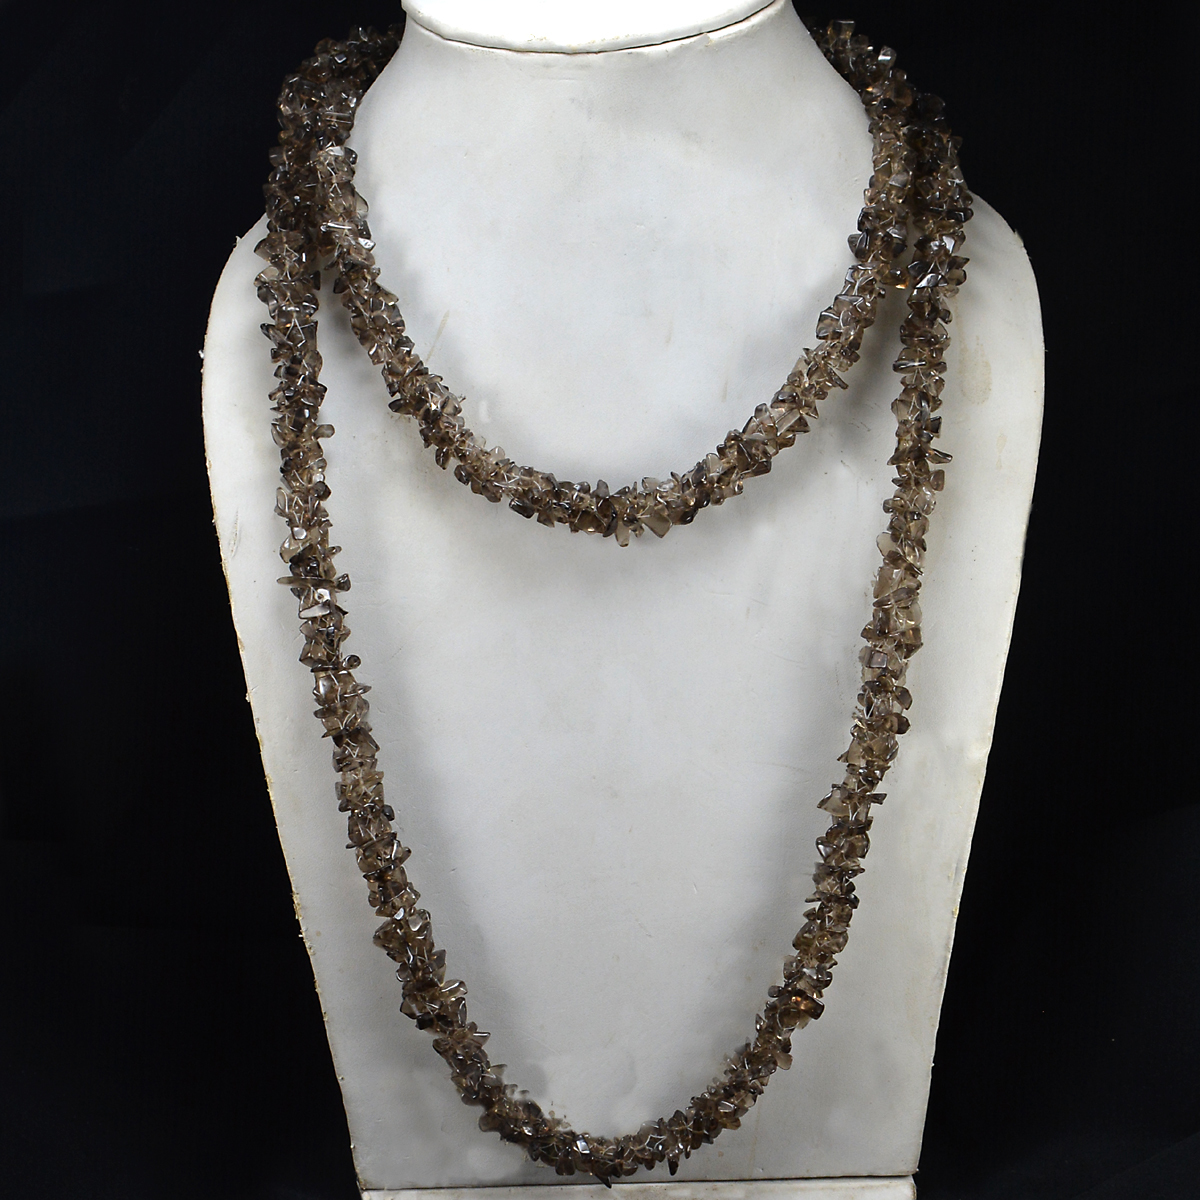 Smokey Crystal Gemstone Chips Necklace PG-156063